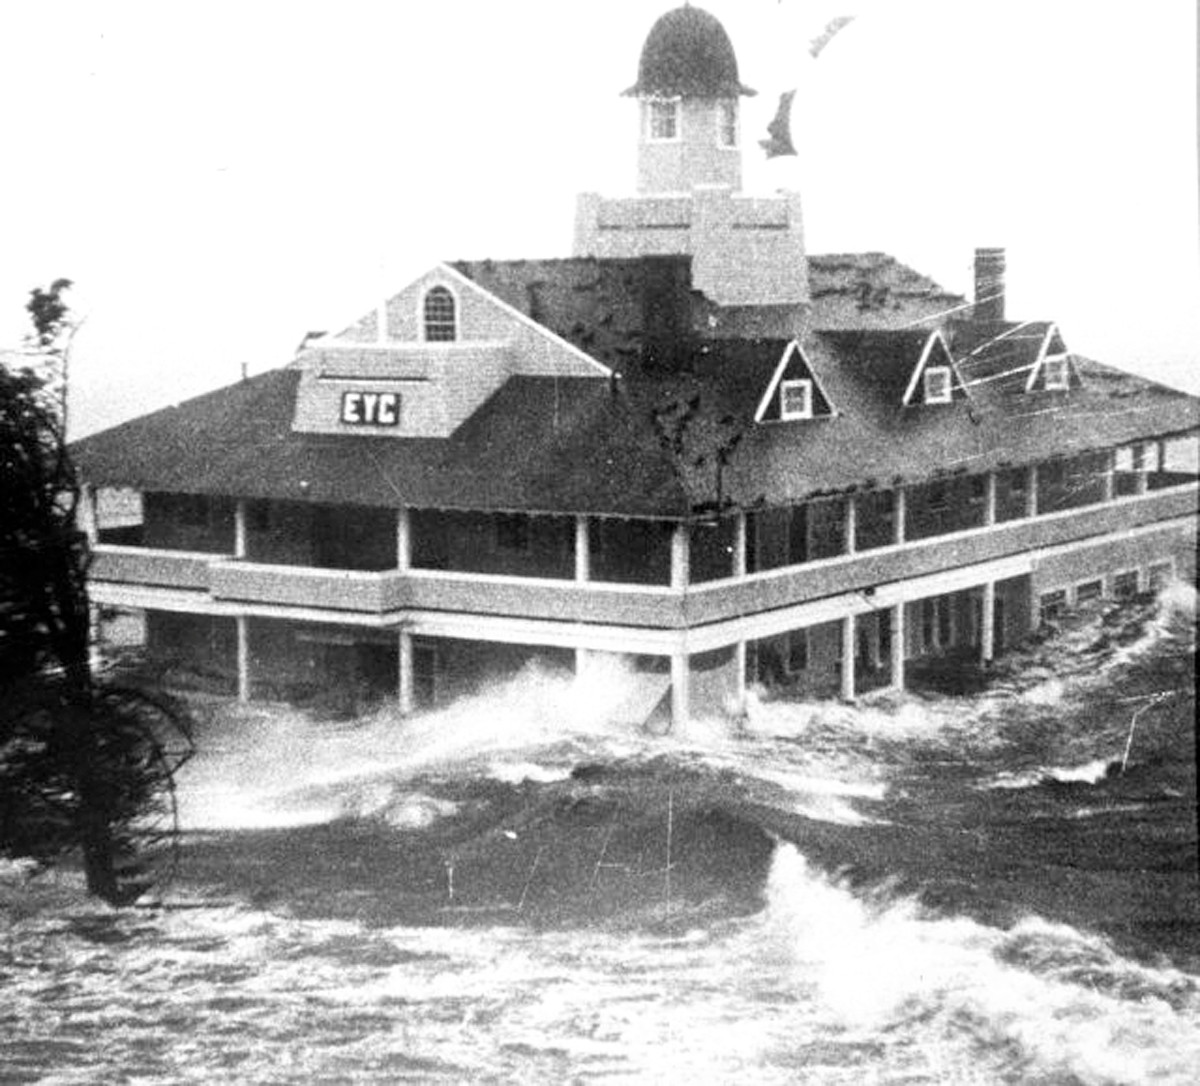 EYC at the height of Hurricane Carol, September, 1954.